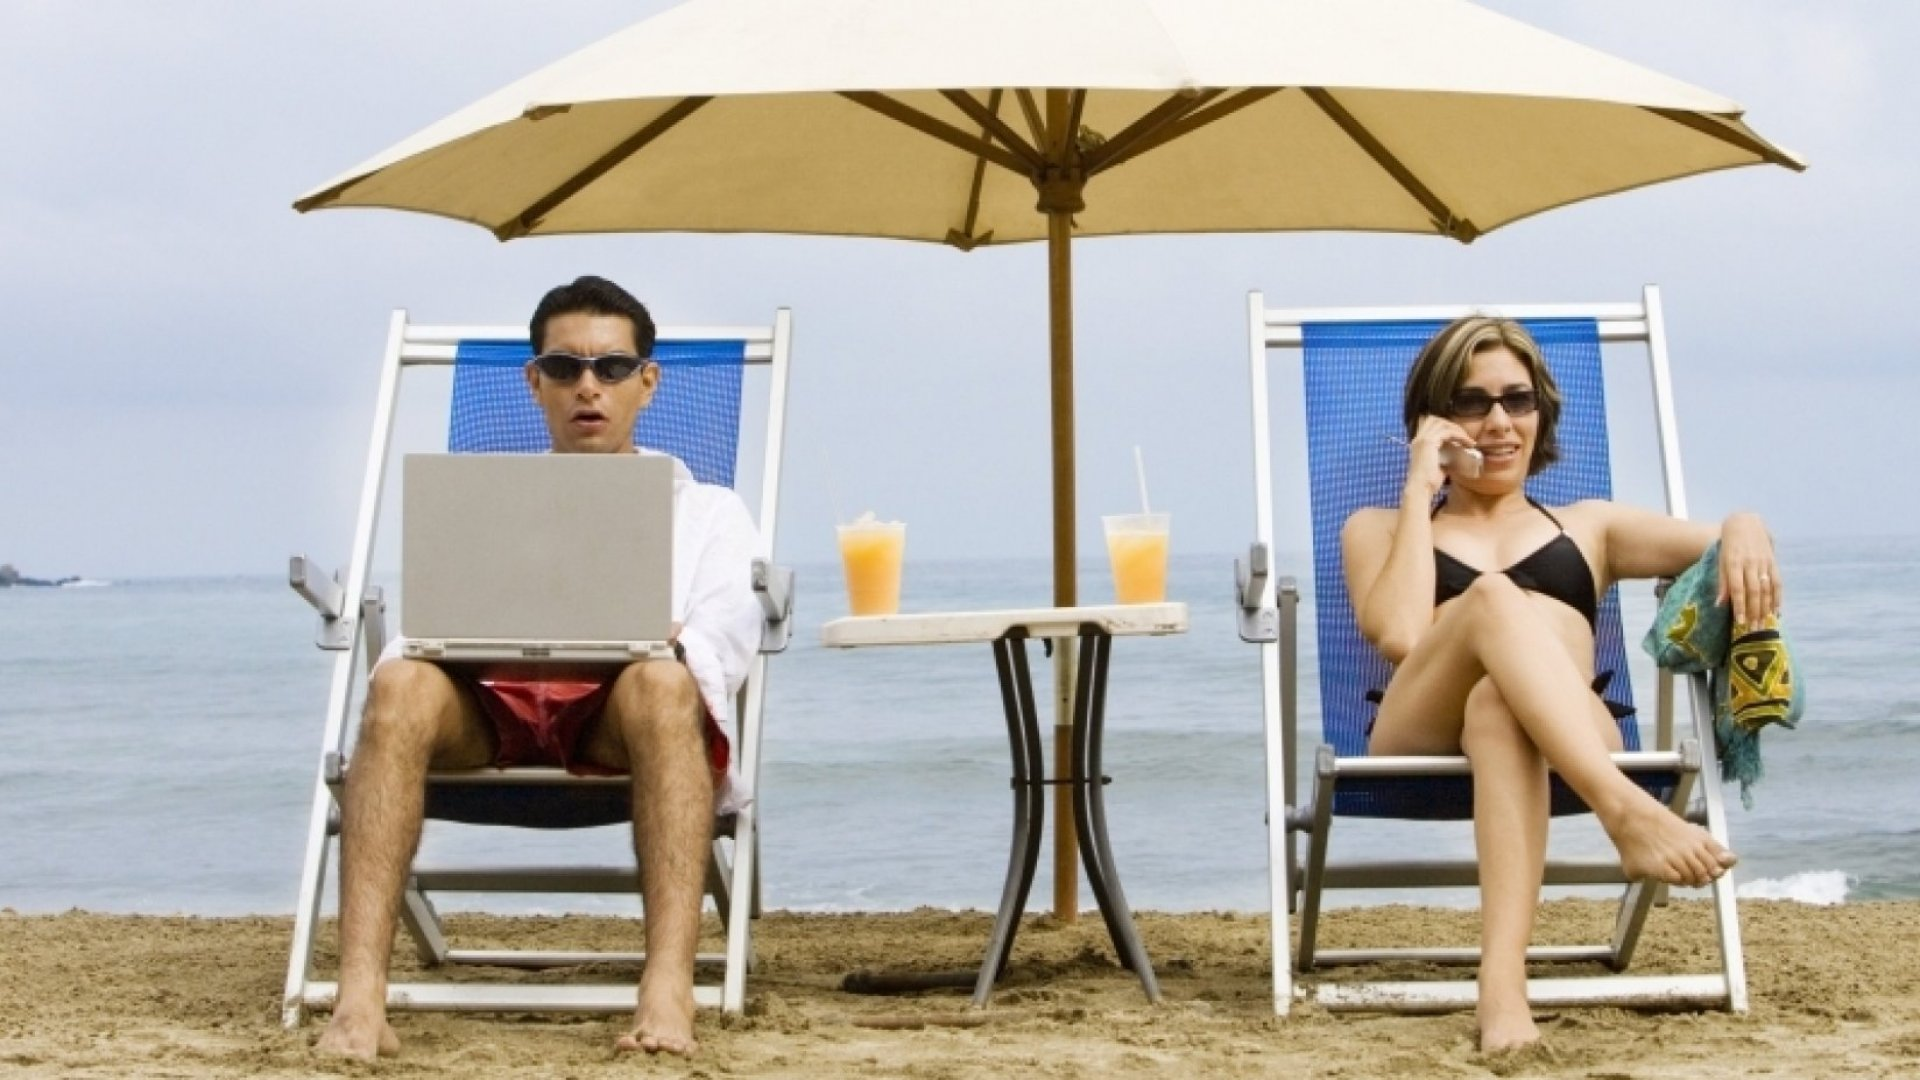 6 Things to Do if You Want Your Dream Job by the End of Summer